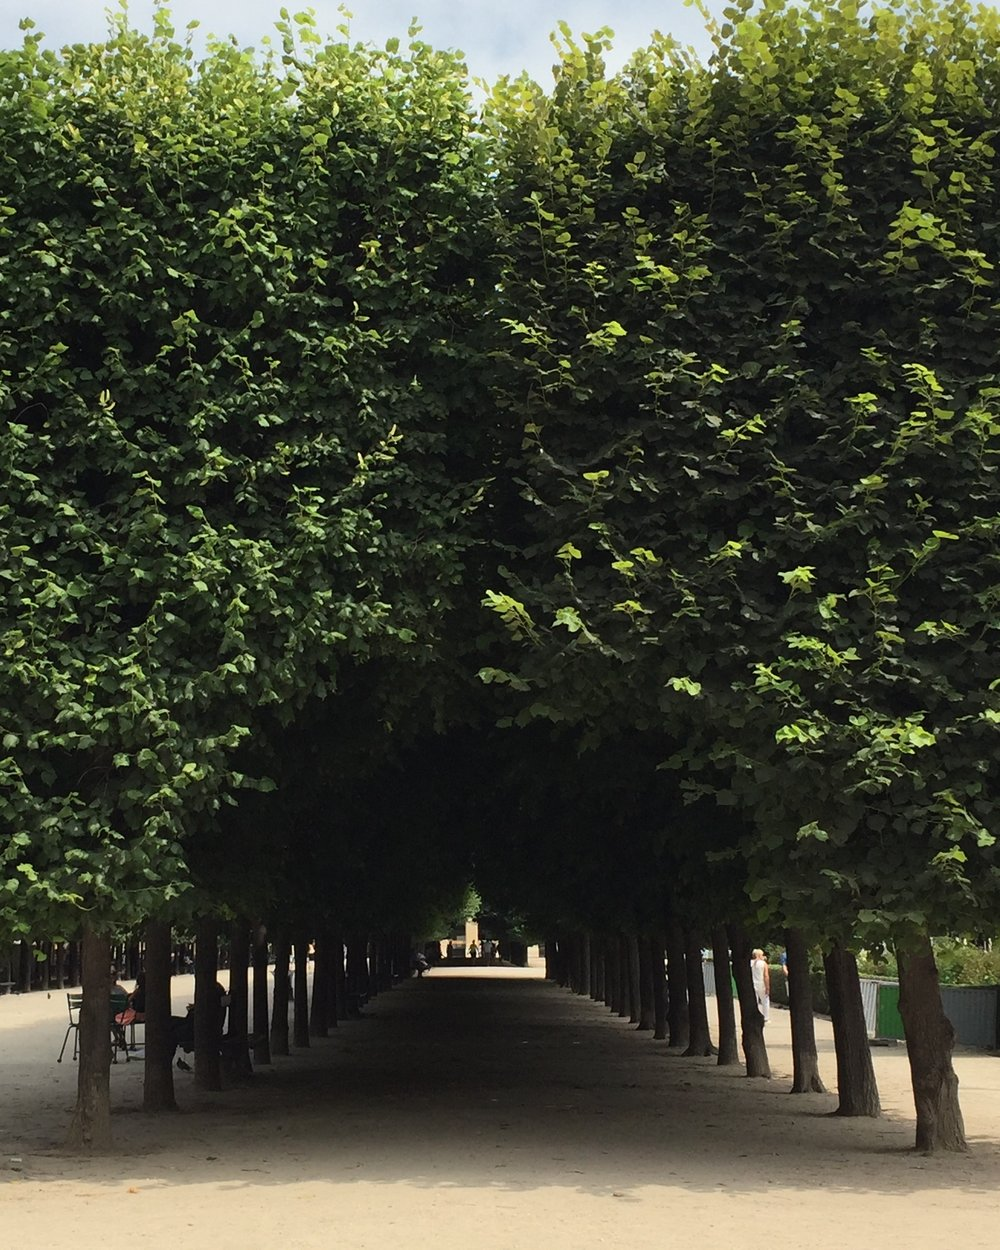 JARDIN DU PALAIS ROYAL, TREE ARCADE, PARIS